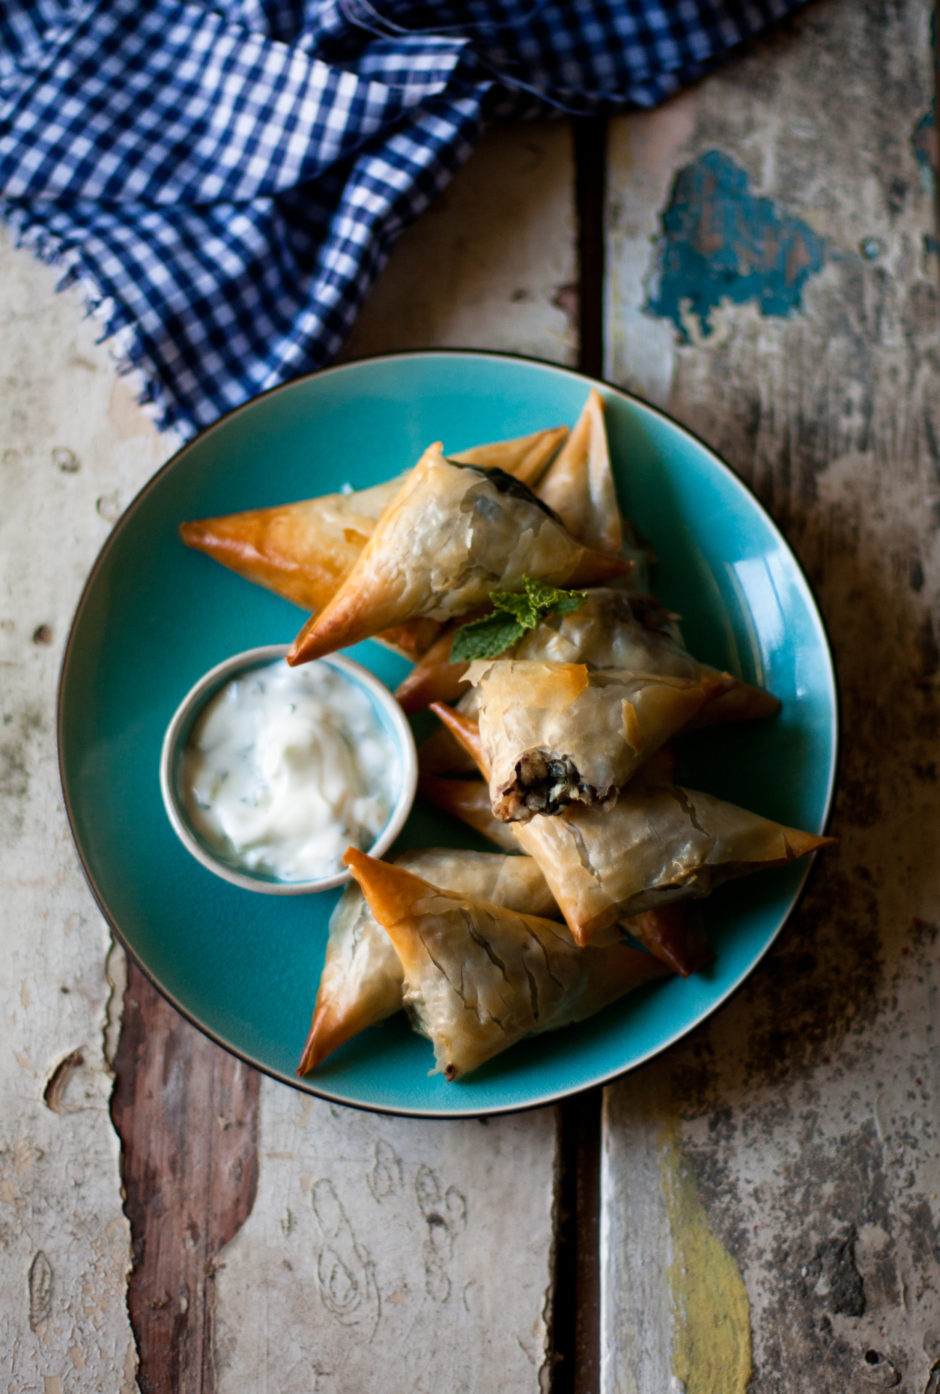 Spinach, Feta, Olive & Pine Nut Spanakopitas. The perfect savoury pastry!